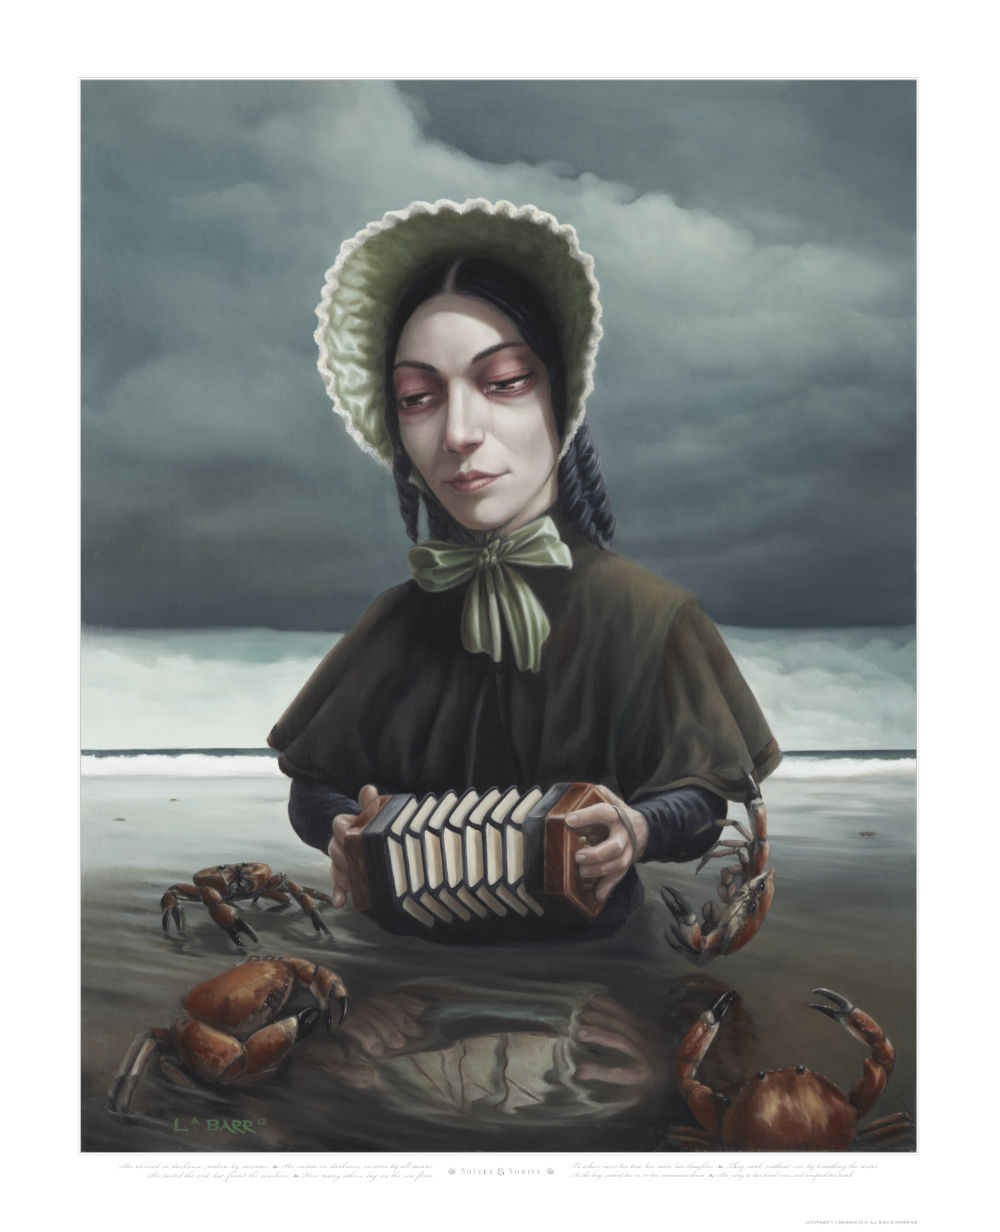 Limited edition print of a playing accordiand while sinking into the sand